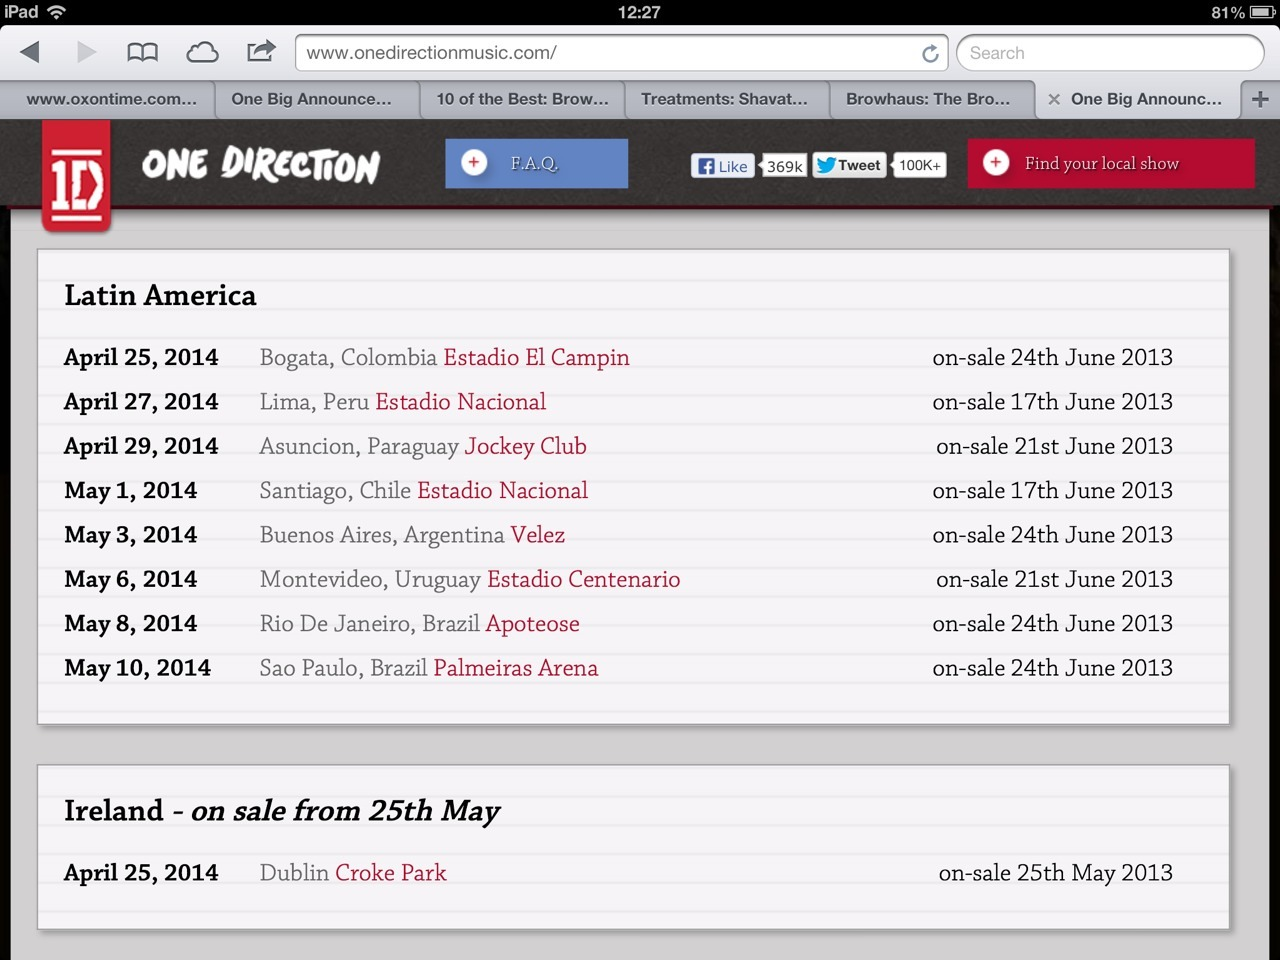 How are One Direction going to be in Dublin AND Colombia on April 25, 2013